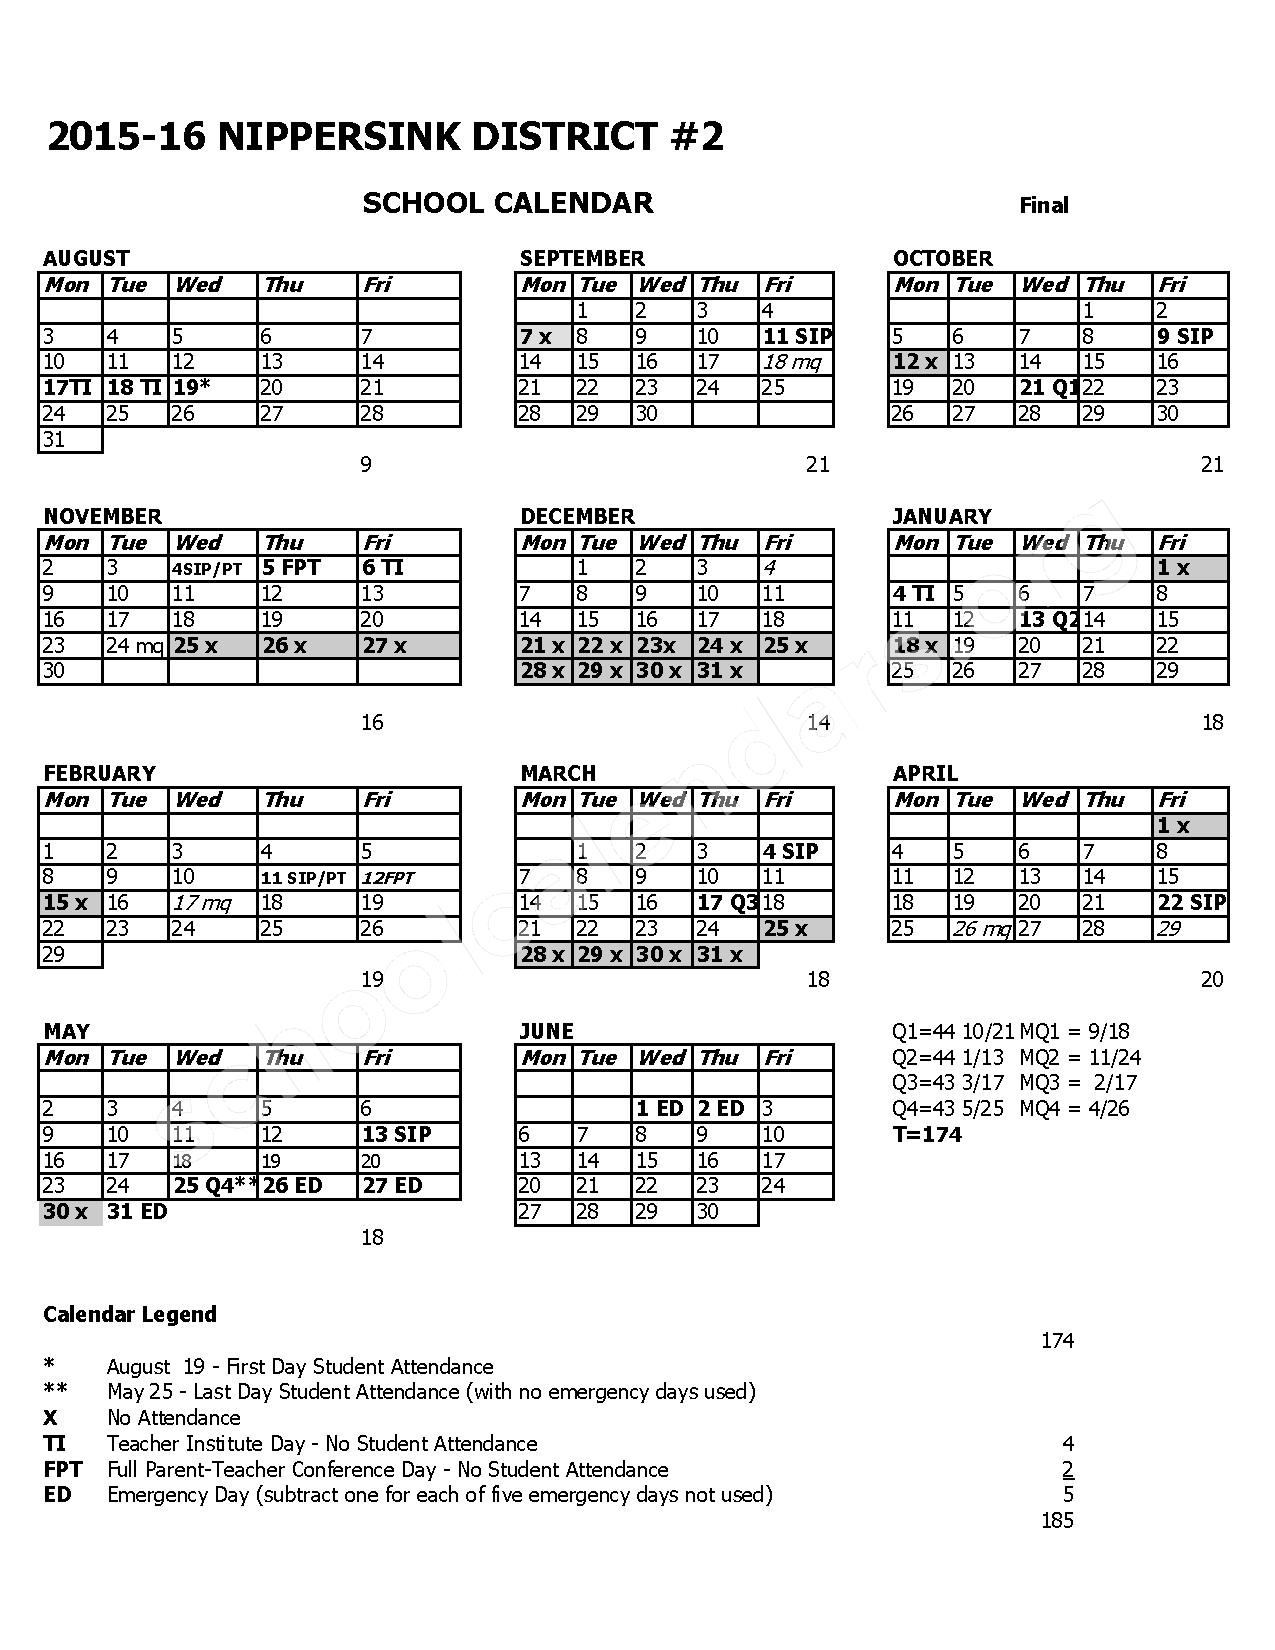 2015 - 2016 District Calendar – Nippersink School District 2 – page 1